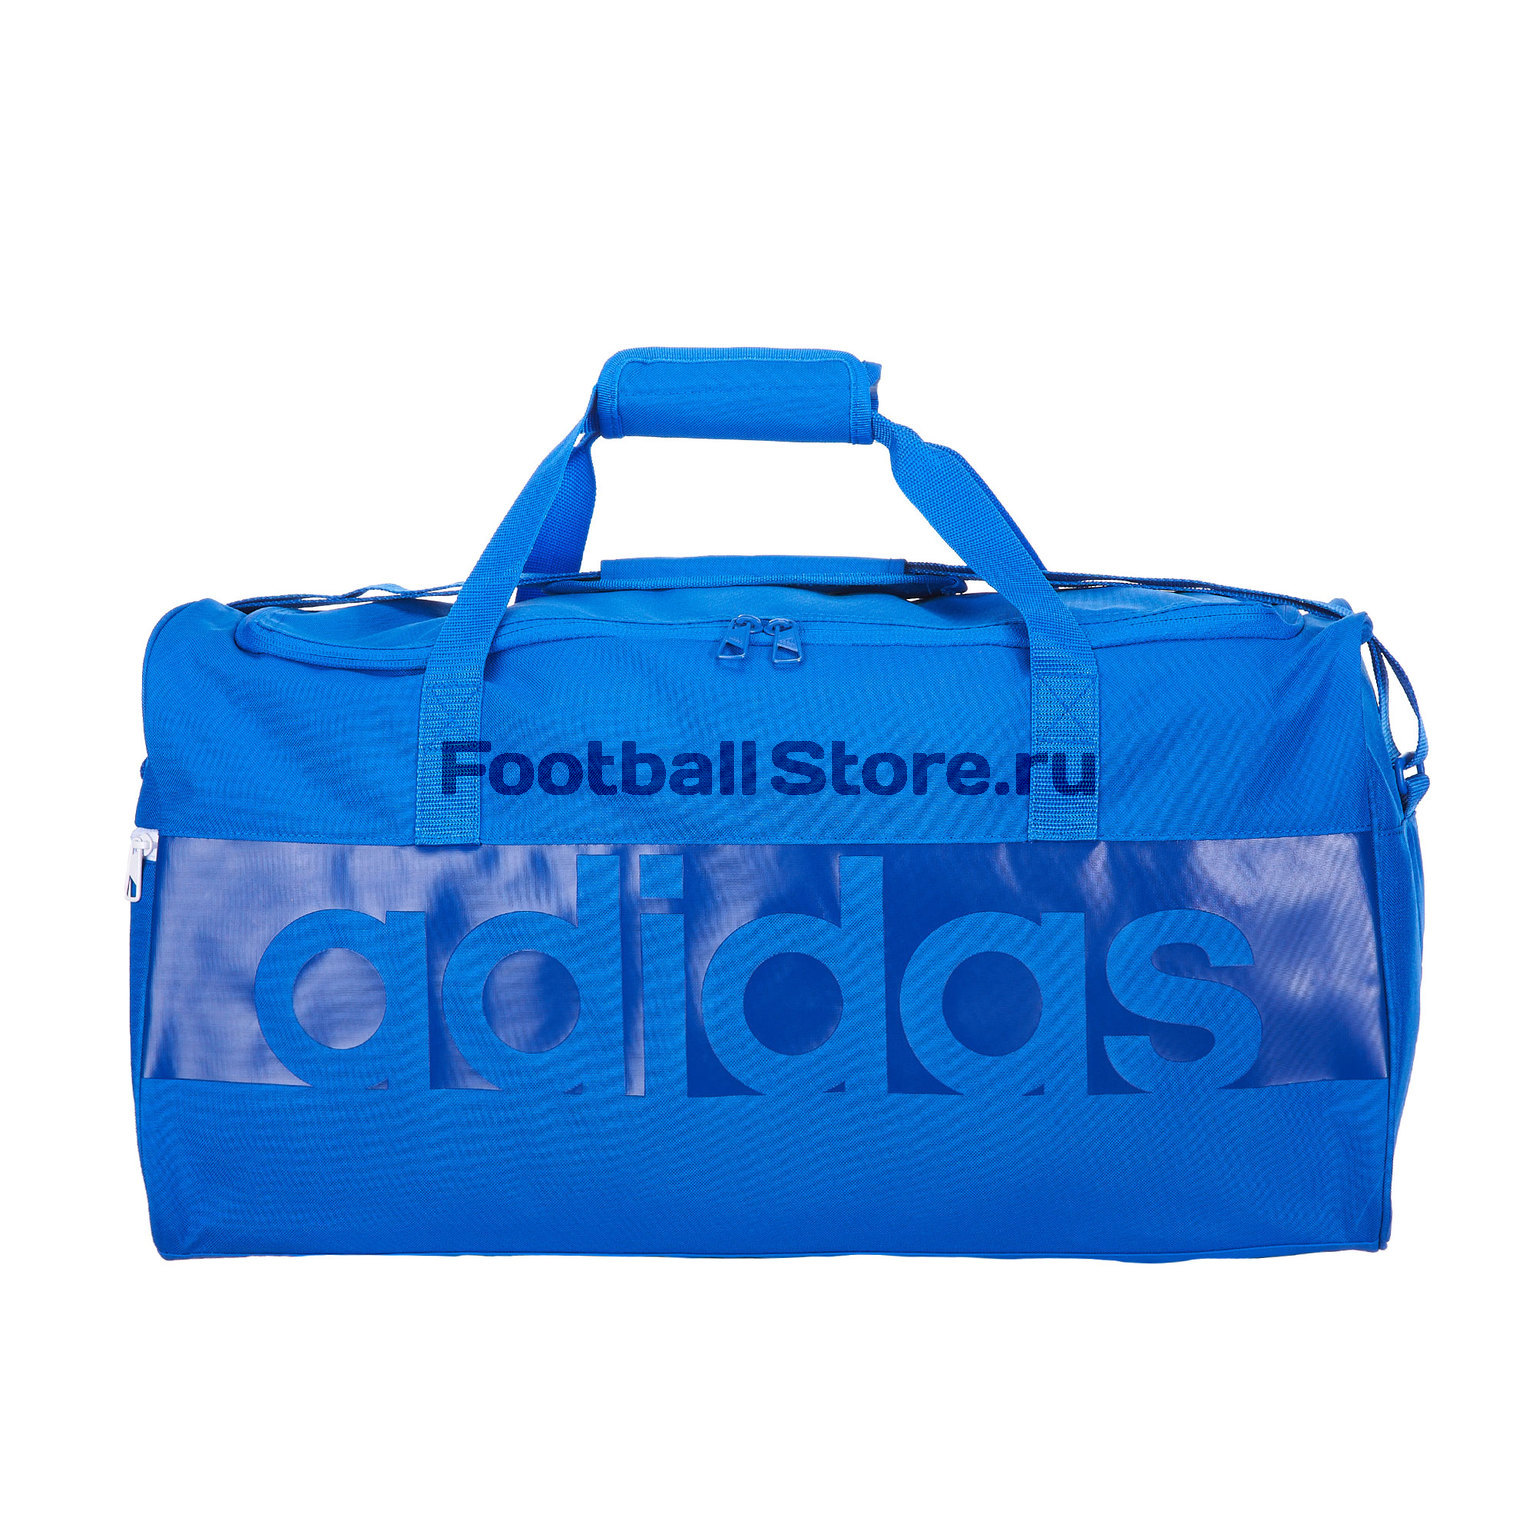 Сумка Adidas Tiro M B46120 рюкзак adidas tiro backpack du1996